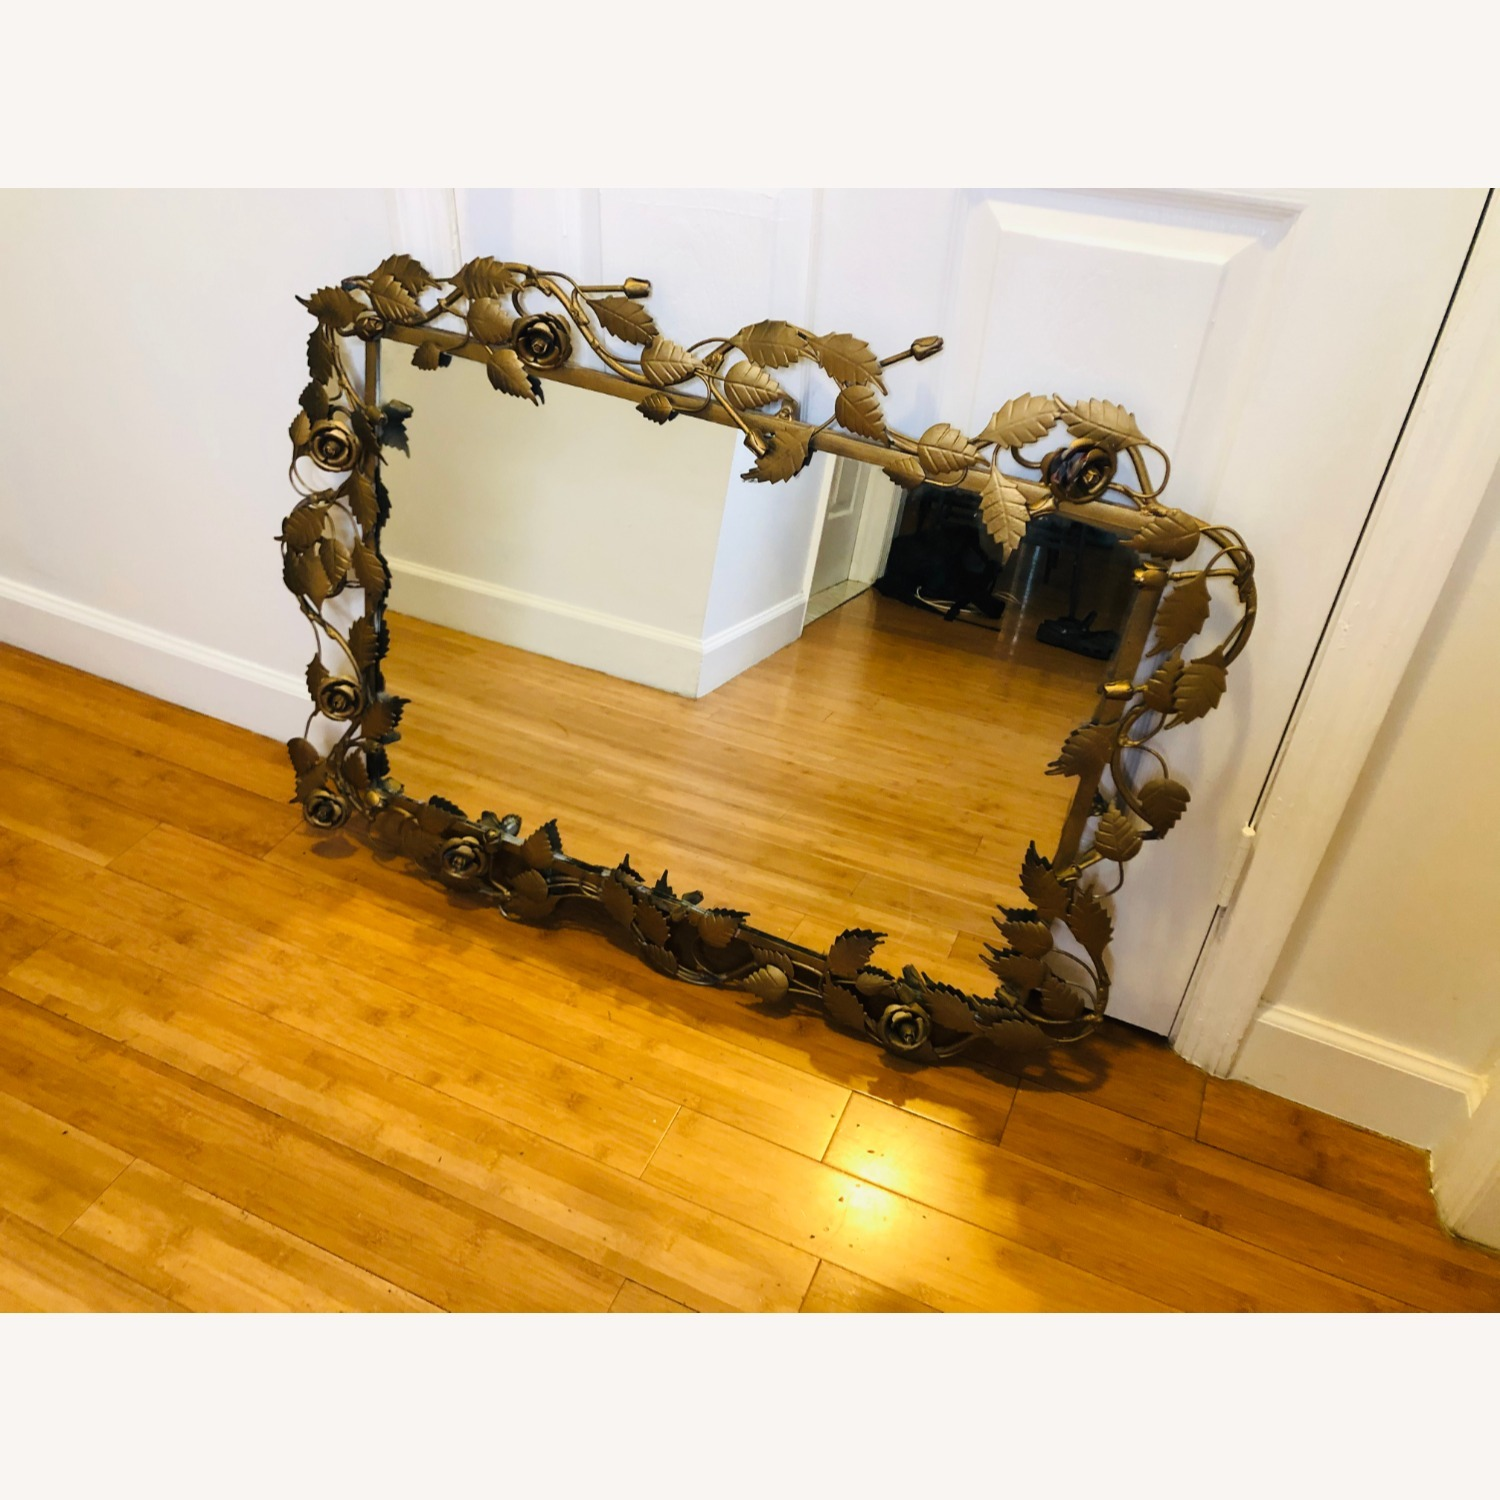 Vintage Anthropologie Mirror with Gold Rose Detail - image-3